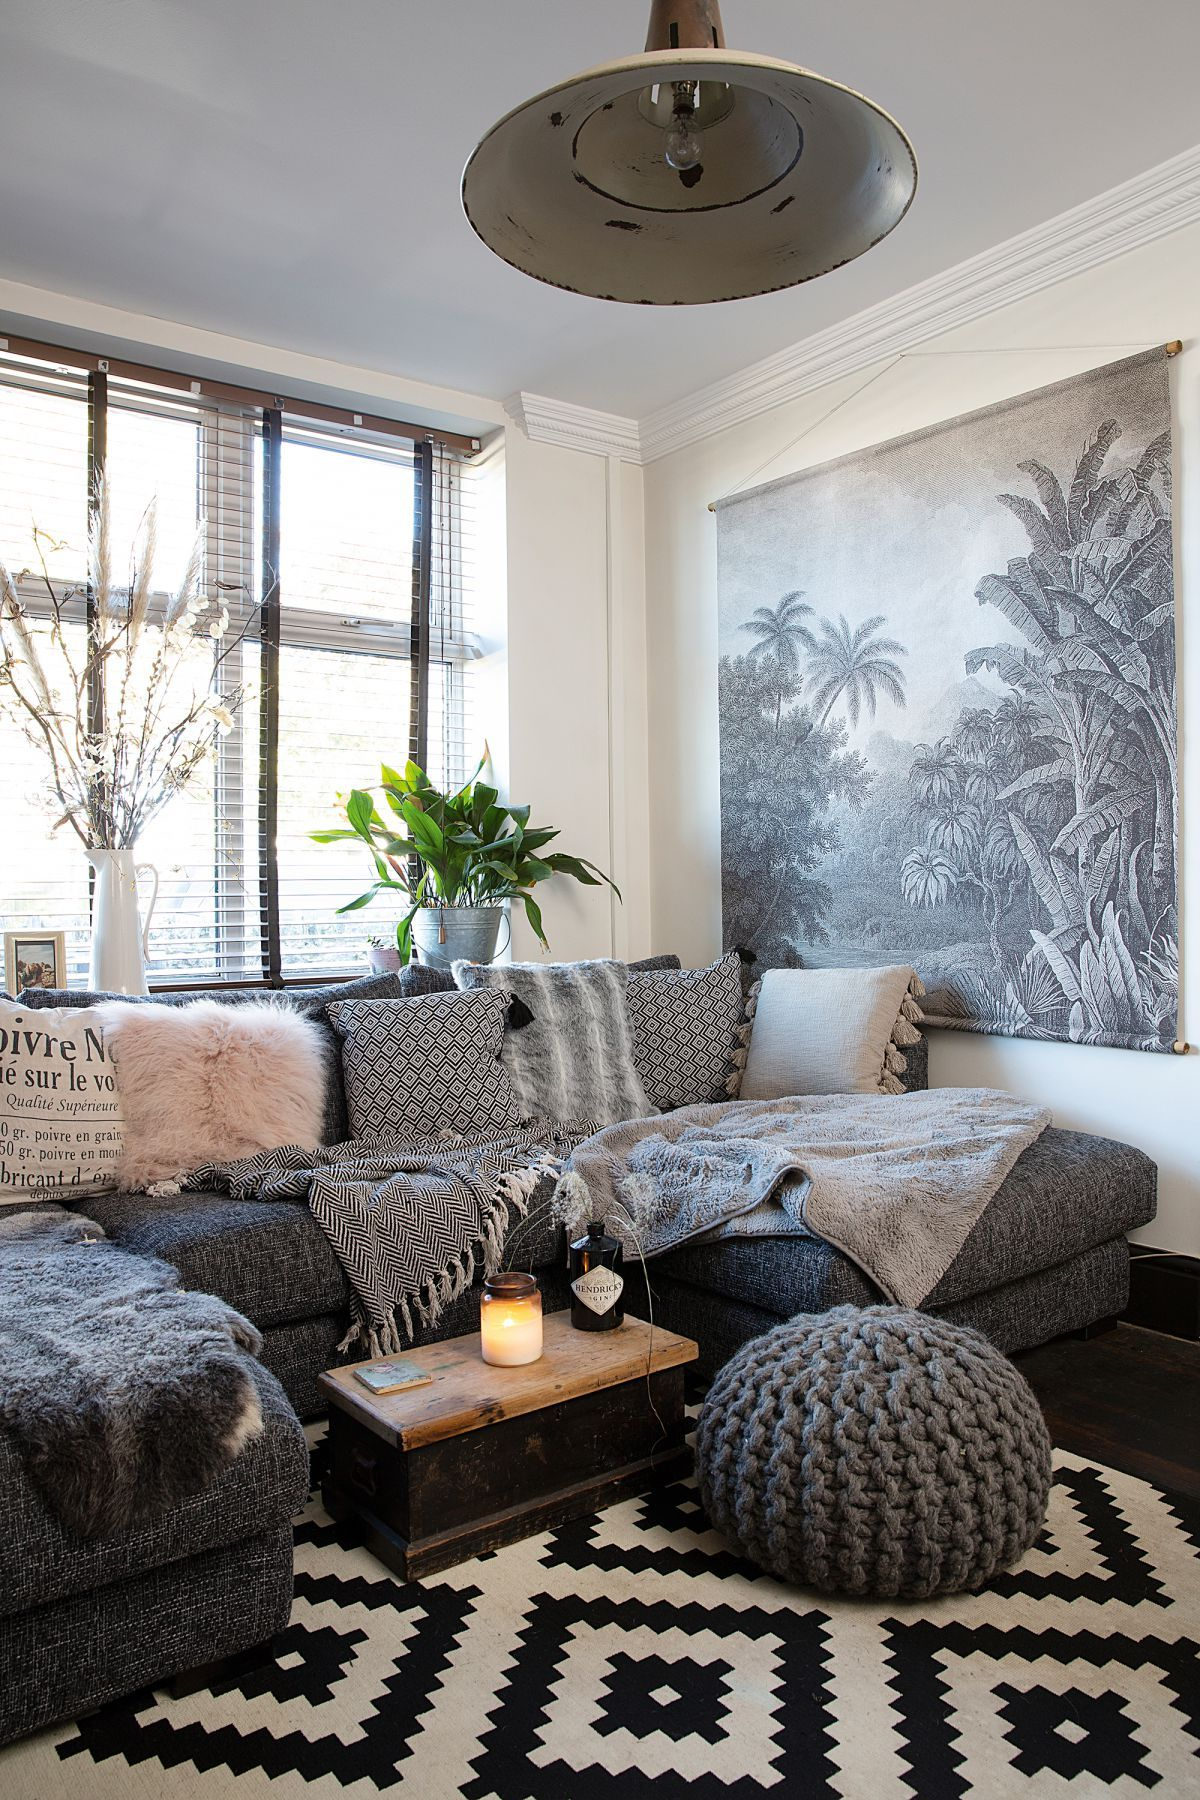 Grey Living Room Ideas To Channel Your Experimentation In 2020 Living Room Decor Gray Grey Furniture Living Room Gray Living Room Design